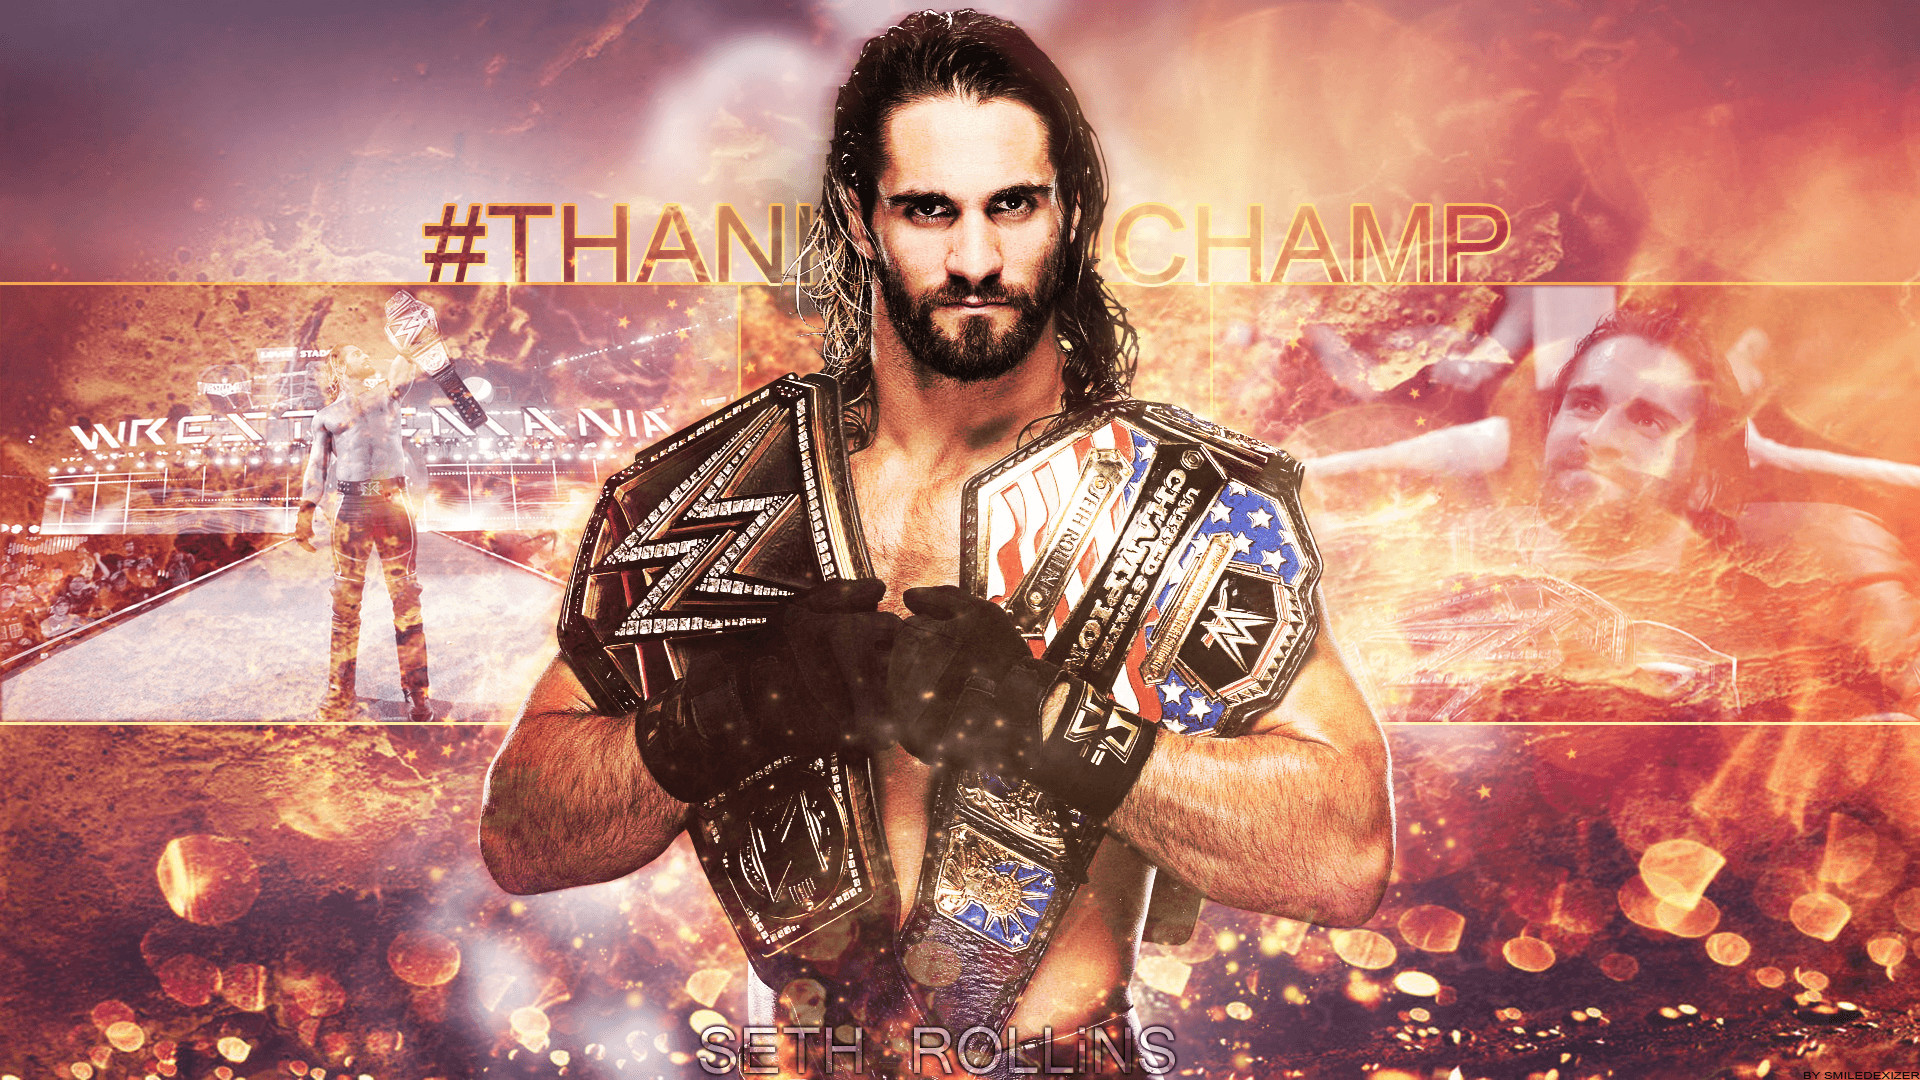 Seth Rollins HD Wallpaper (76+ images)